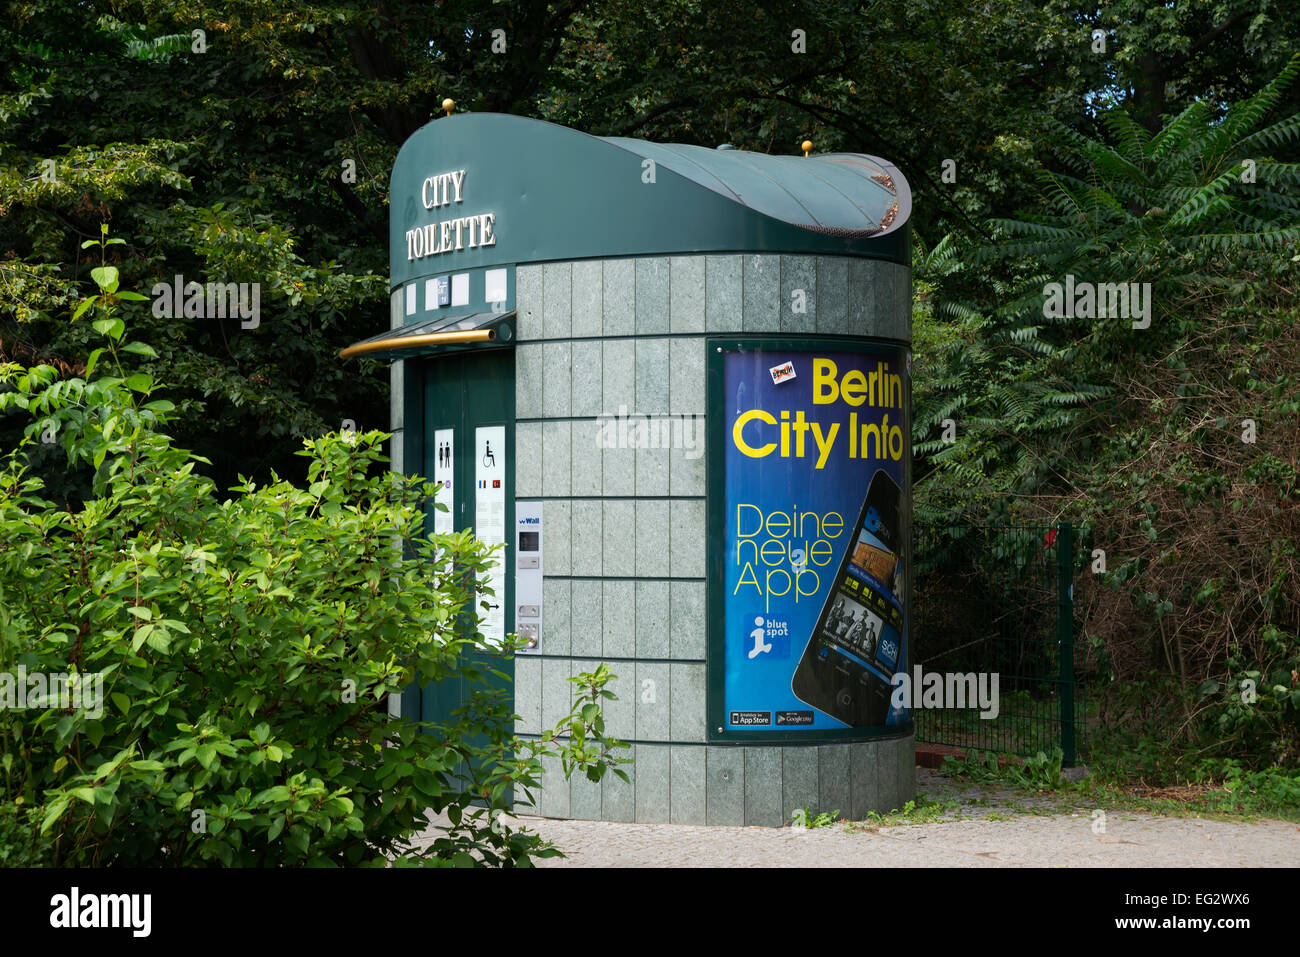 Compact toilet , Berlin, Capital of Germany, Europe. - Stock Image